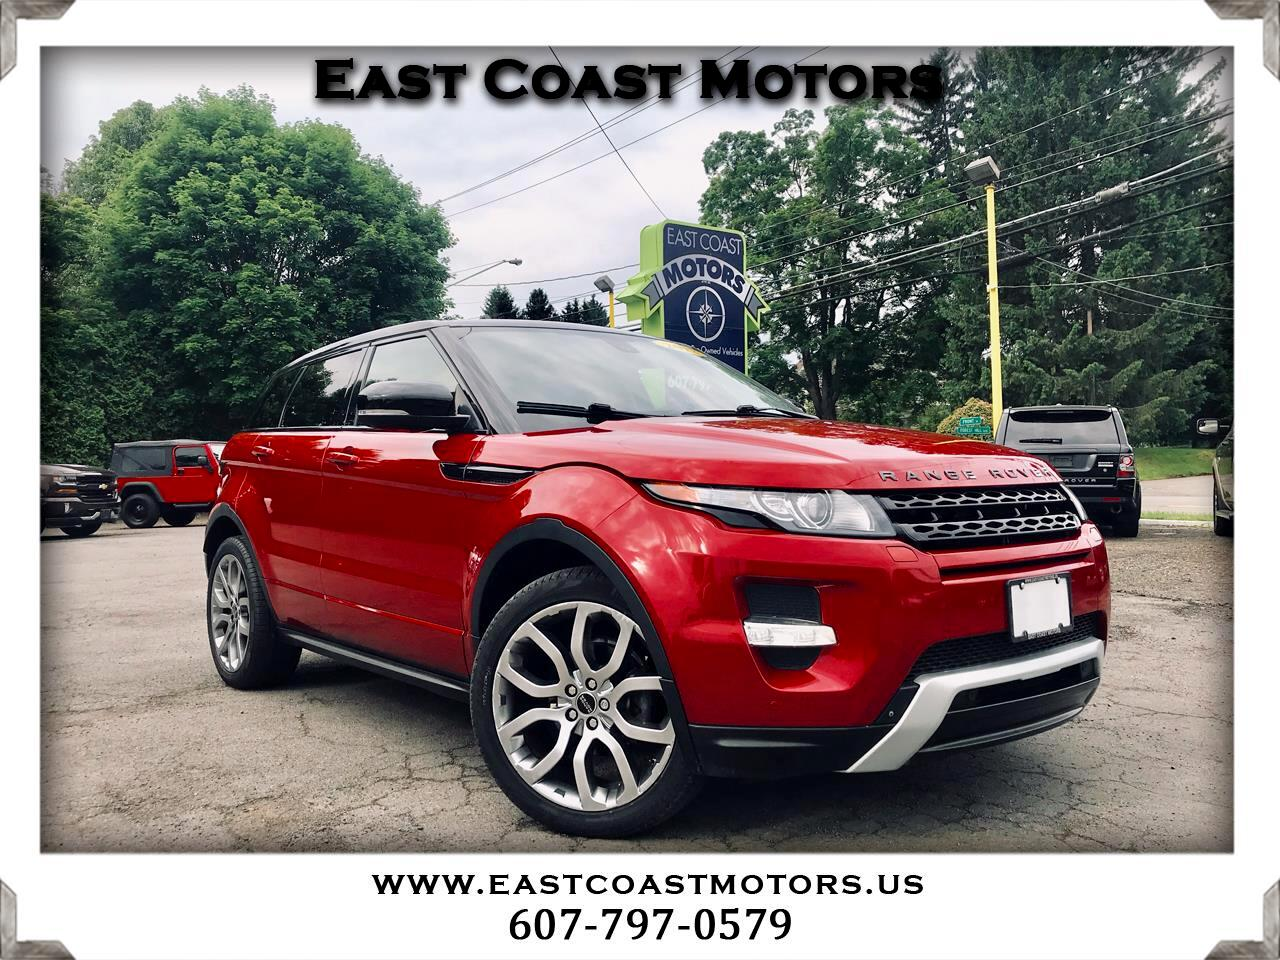 2012 Land Rover Range Rover Evoque Dynamic Premium 5-Door